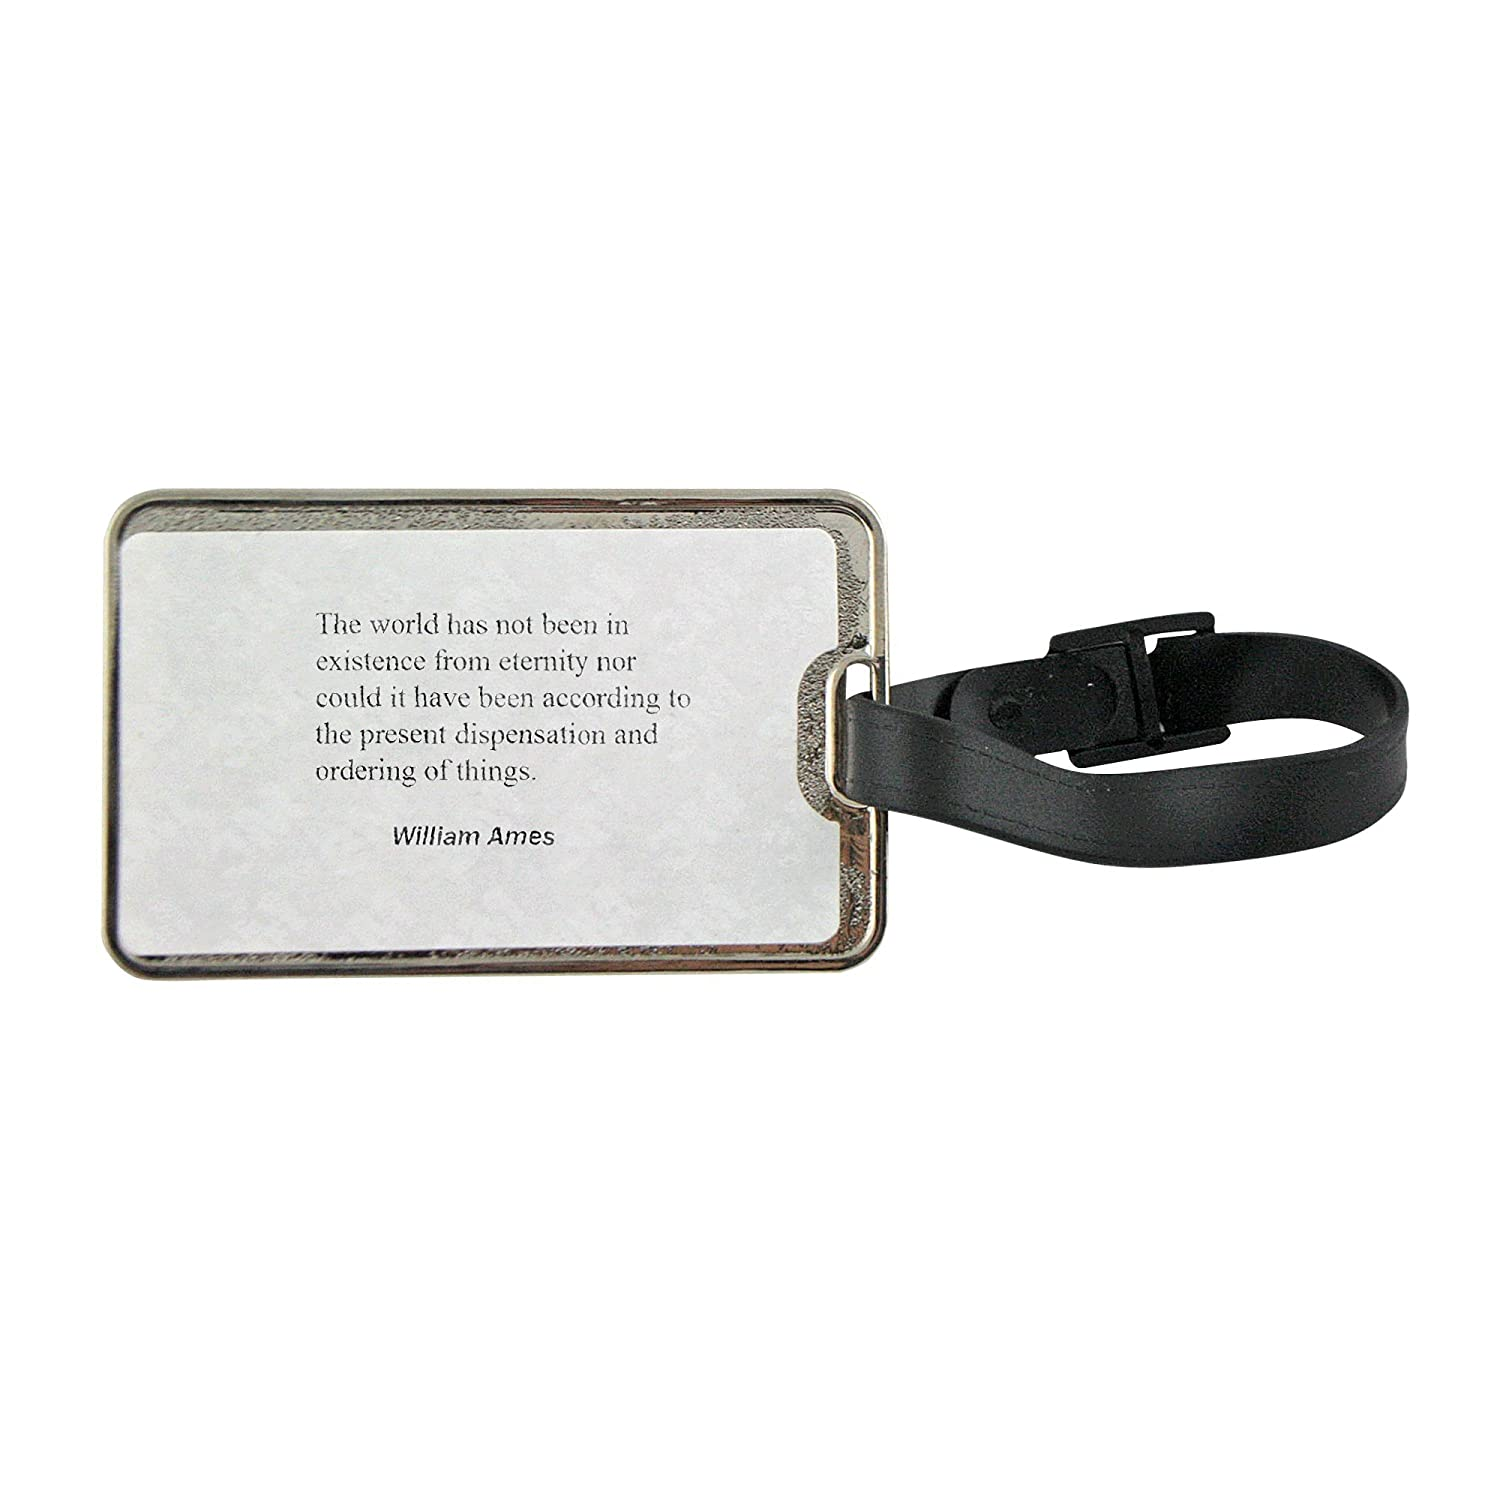 85%OFF Metal luggage tag with The world has not been in existence from  eternity d94edf4eb9